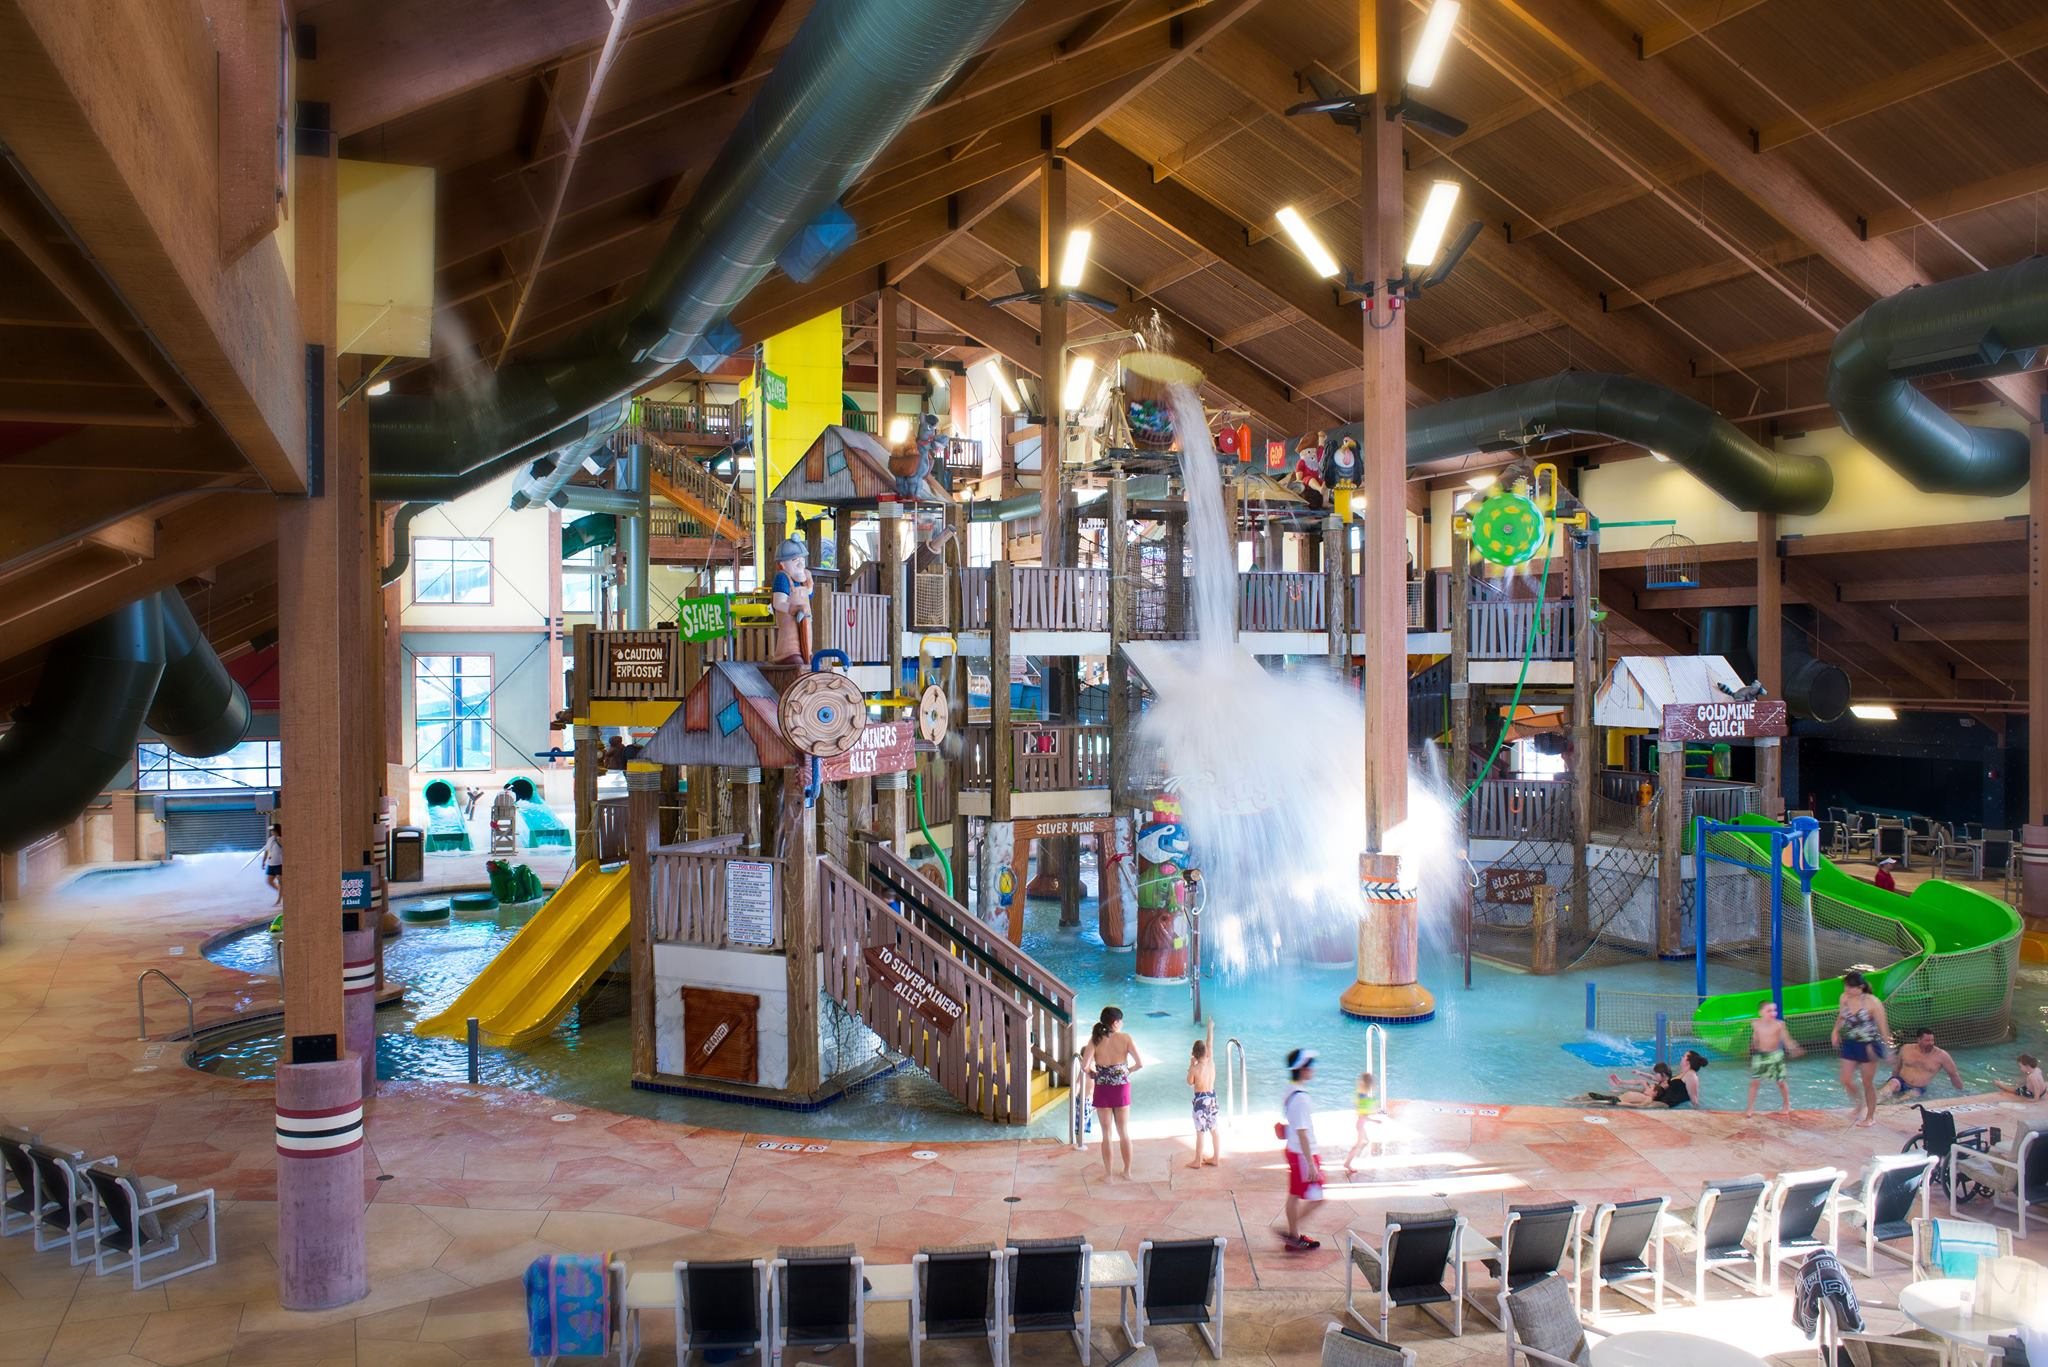 9 Of The Best Indoor Water Parks In The US